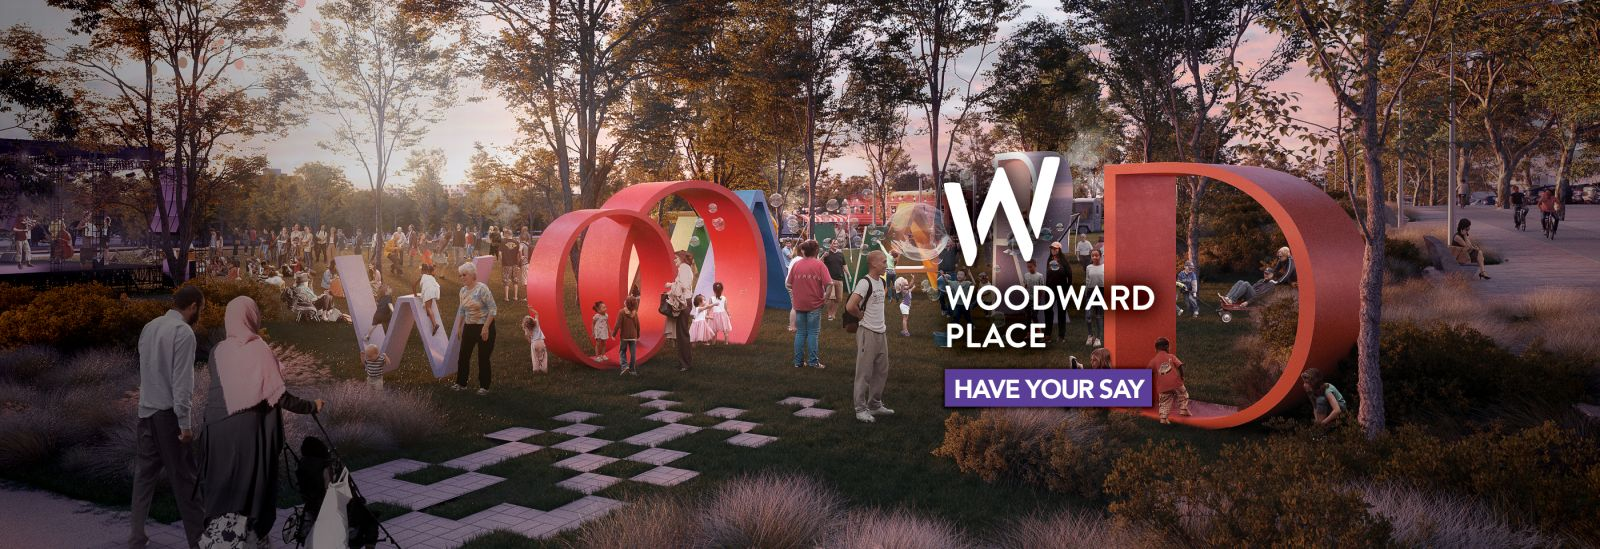 Woodward Place banner 2 banner image